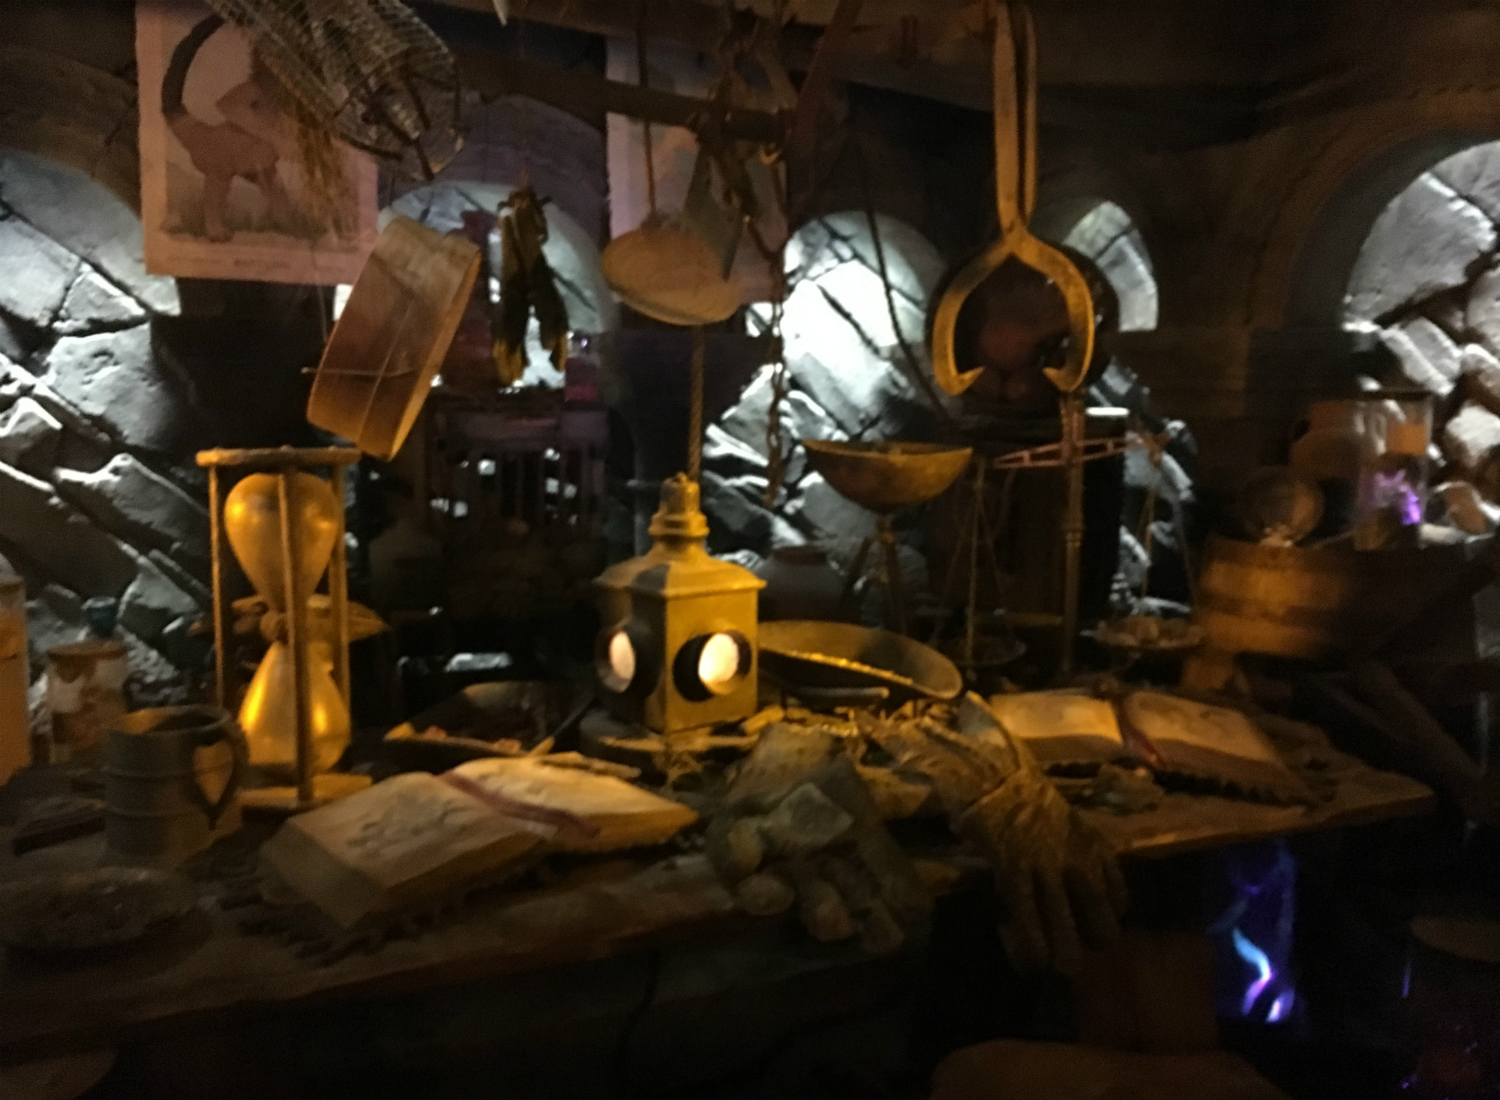 Hagrid's work table is full of items that are perfect for traveling into the Forbidden Forest and handling magical creatures – even at night.